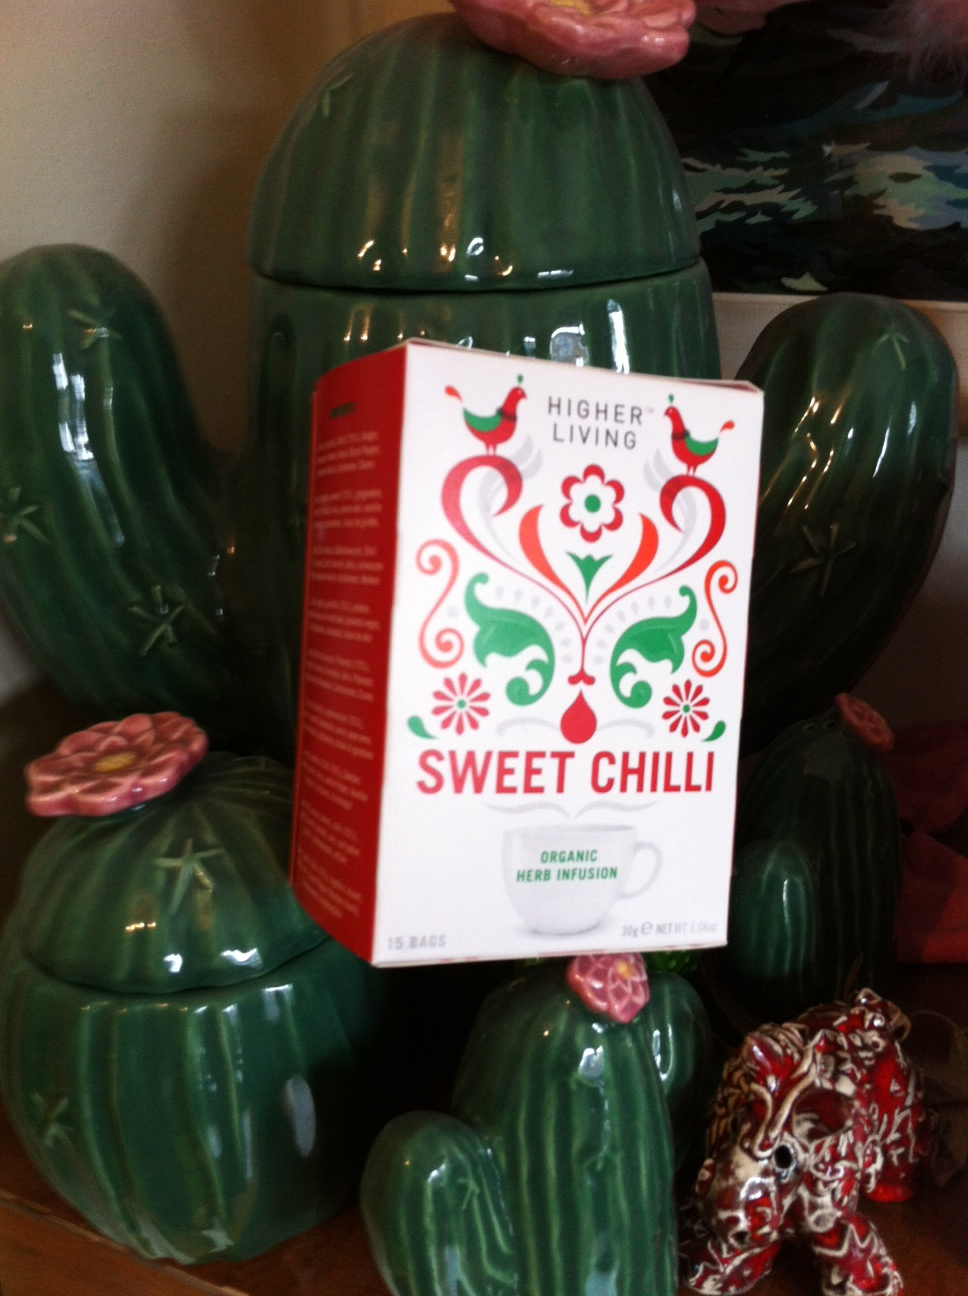 Would You Be Brave Enough to Try Higher Life's Sweet Chilli Tea?